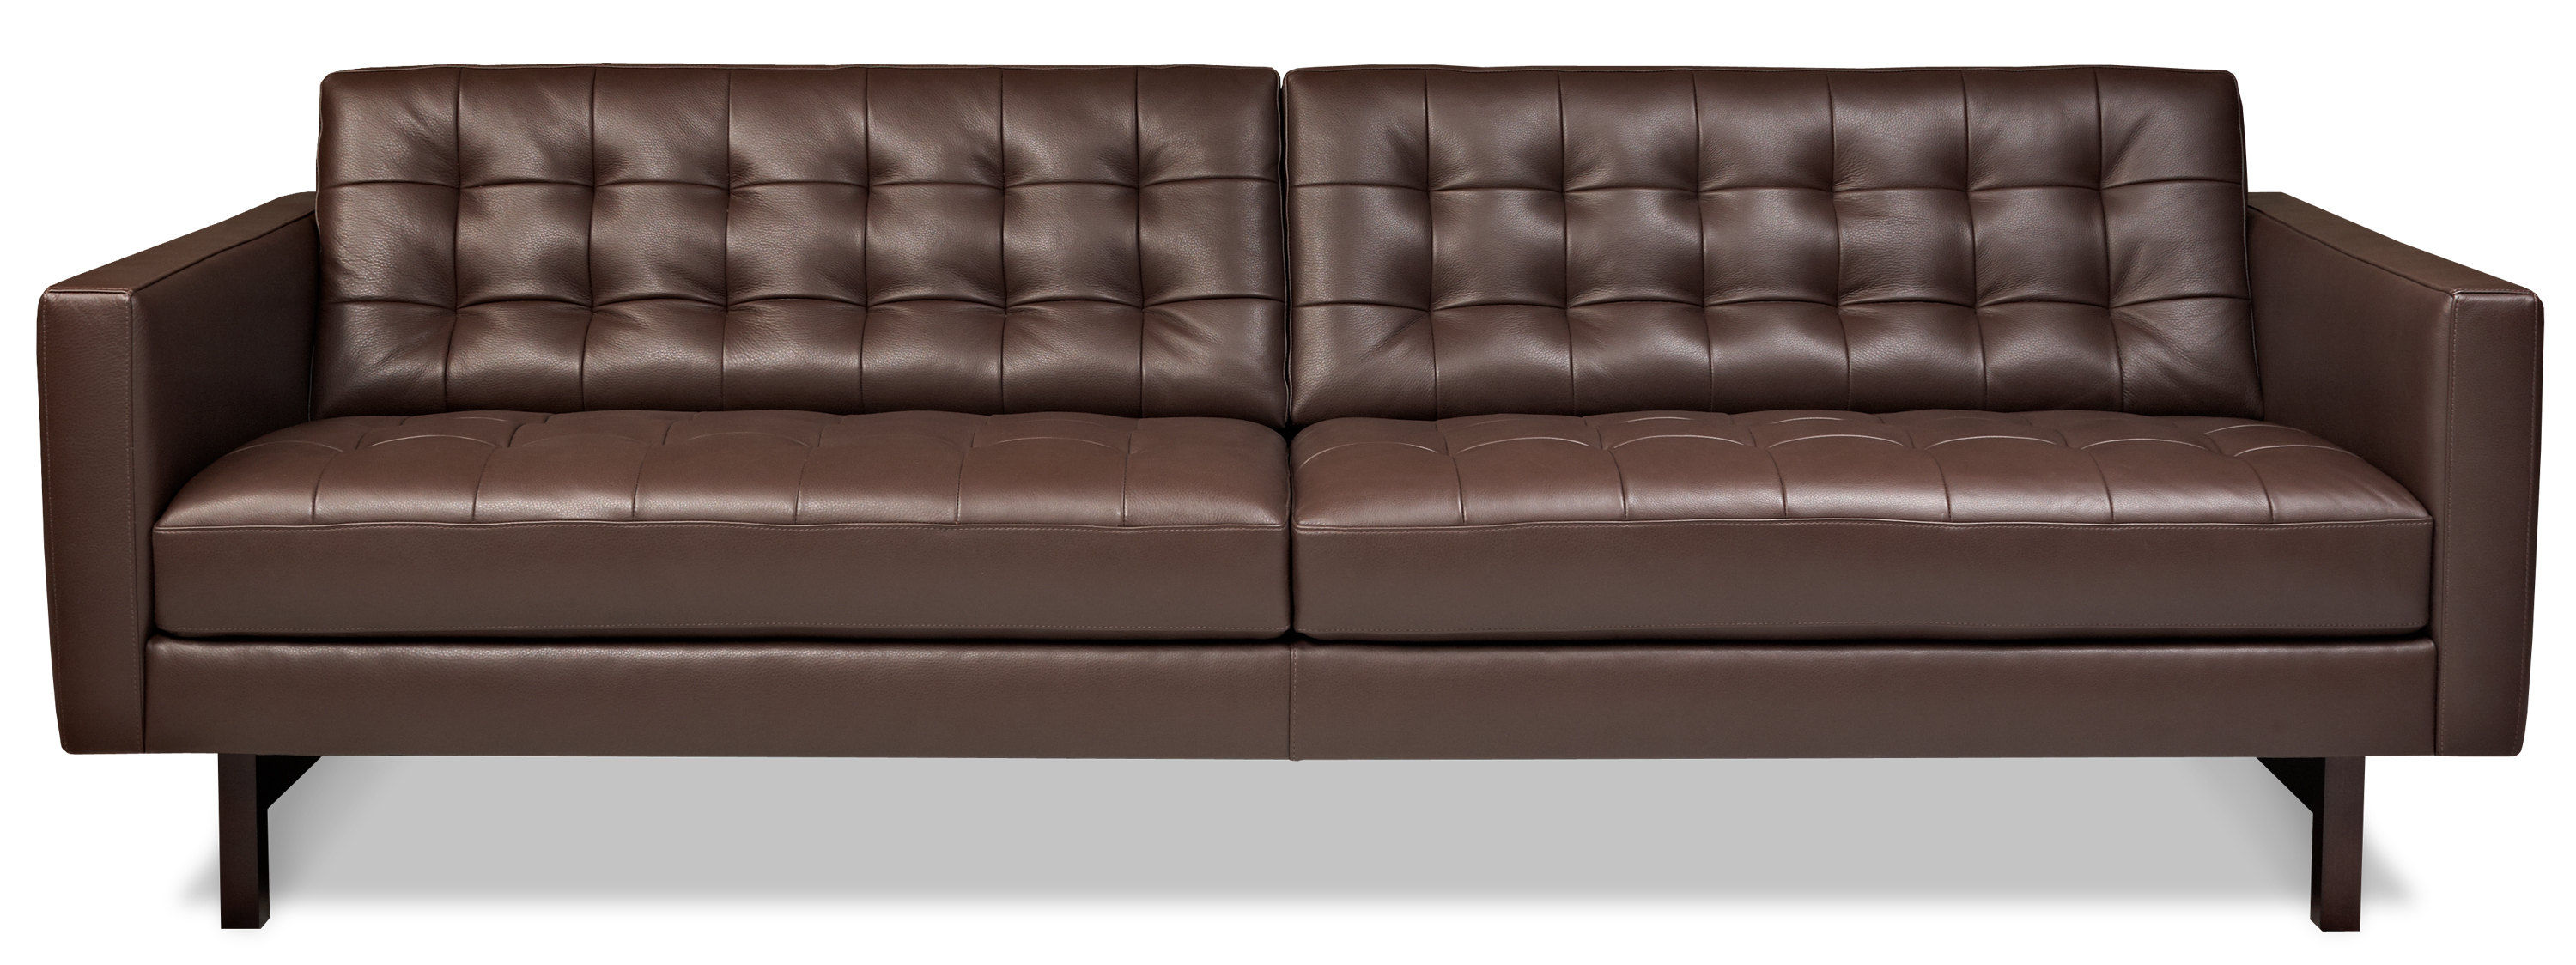 Parker Sofa American Leather | King Sofa Intended For Parker Sofa Chairs (View 20 of 25)